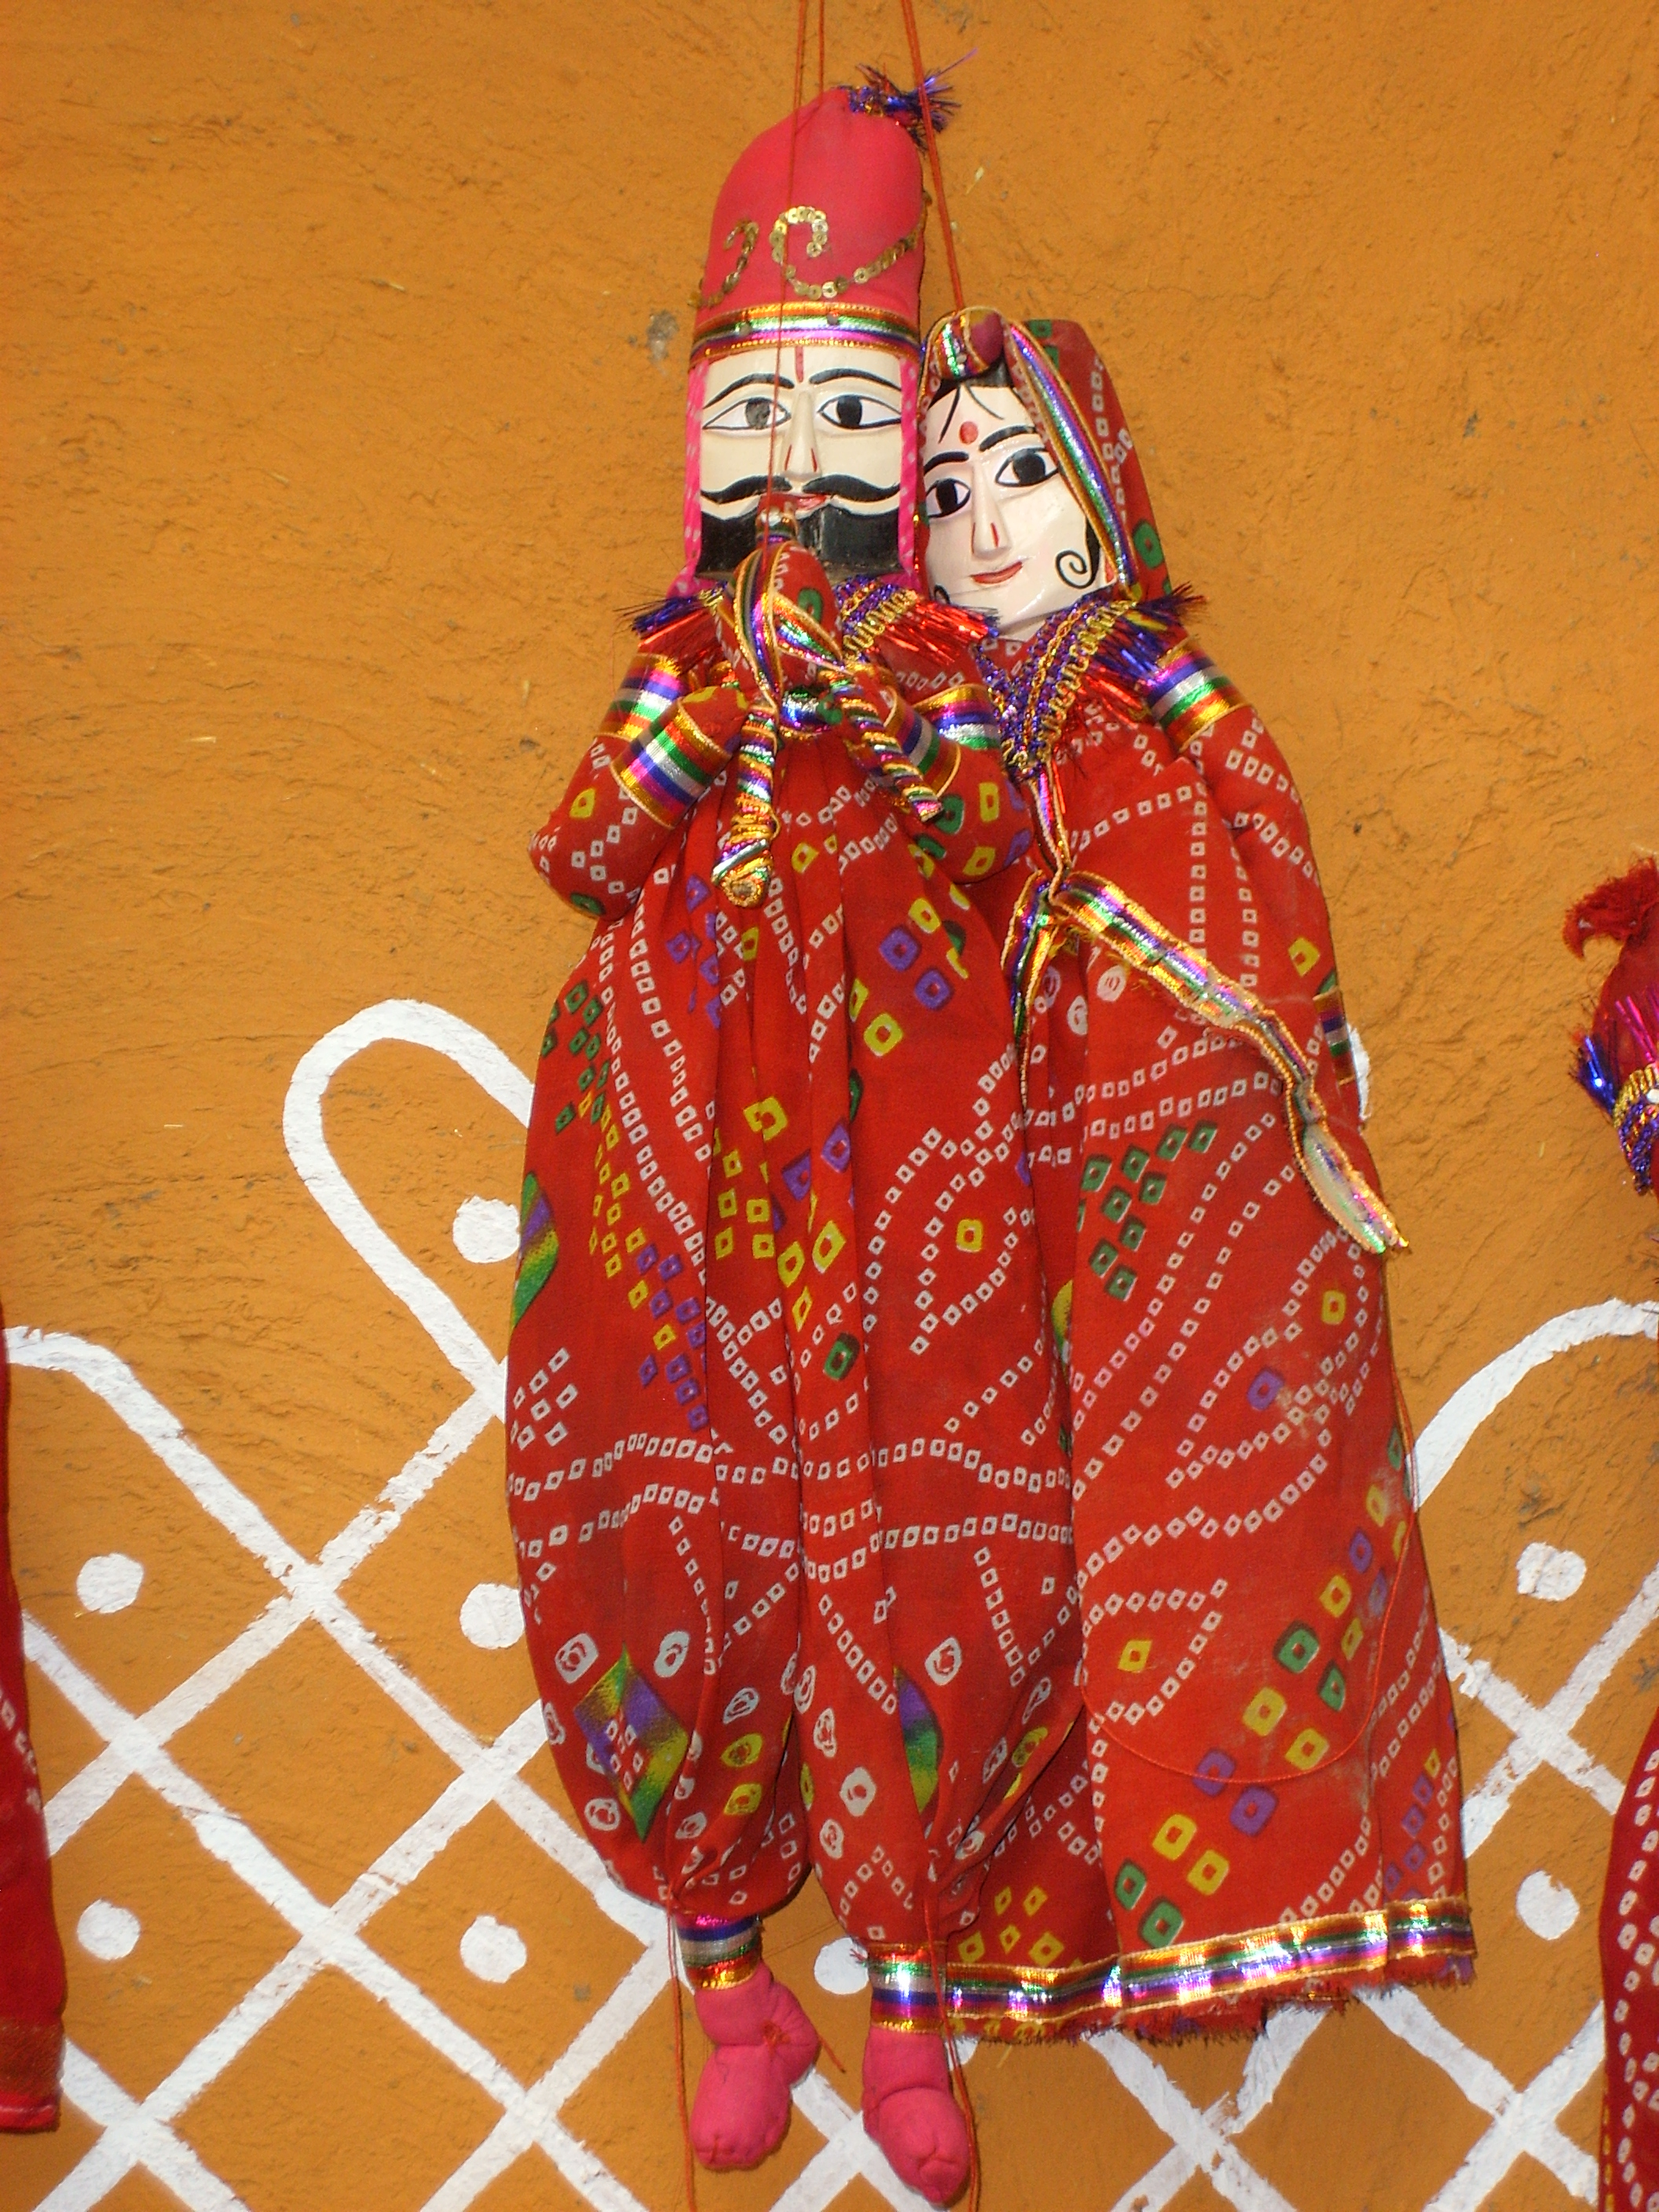 Rajasthani puppets by yashmeet135 on DeviantArt